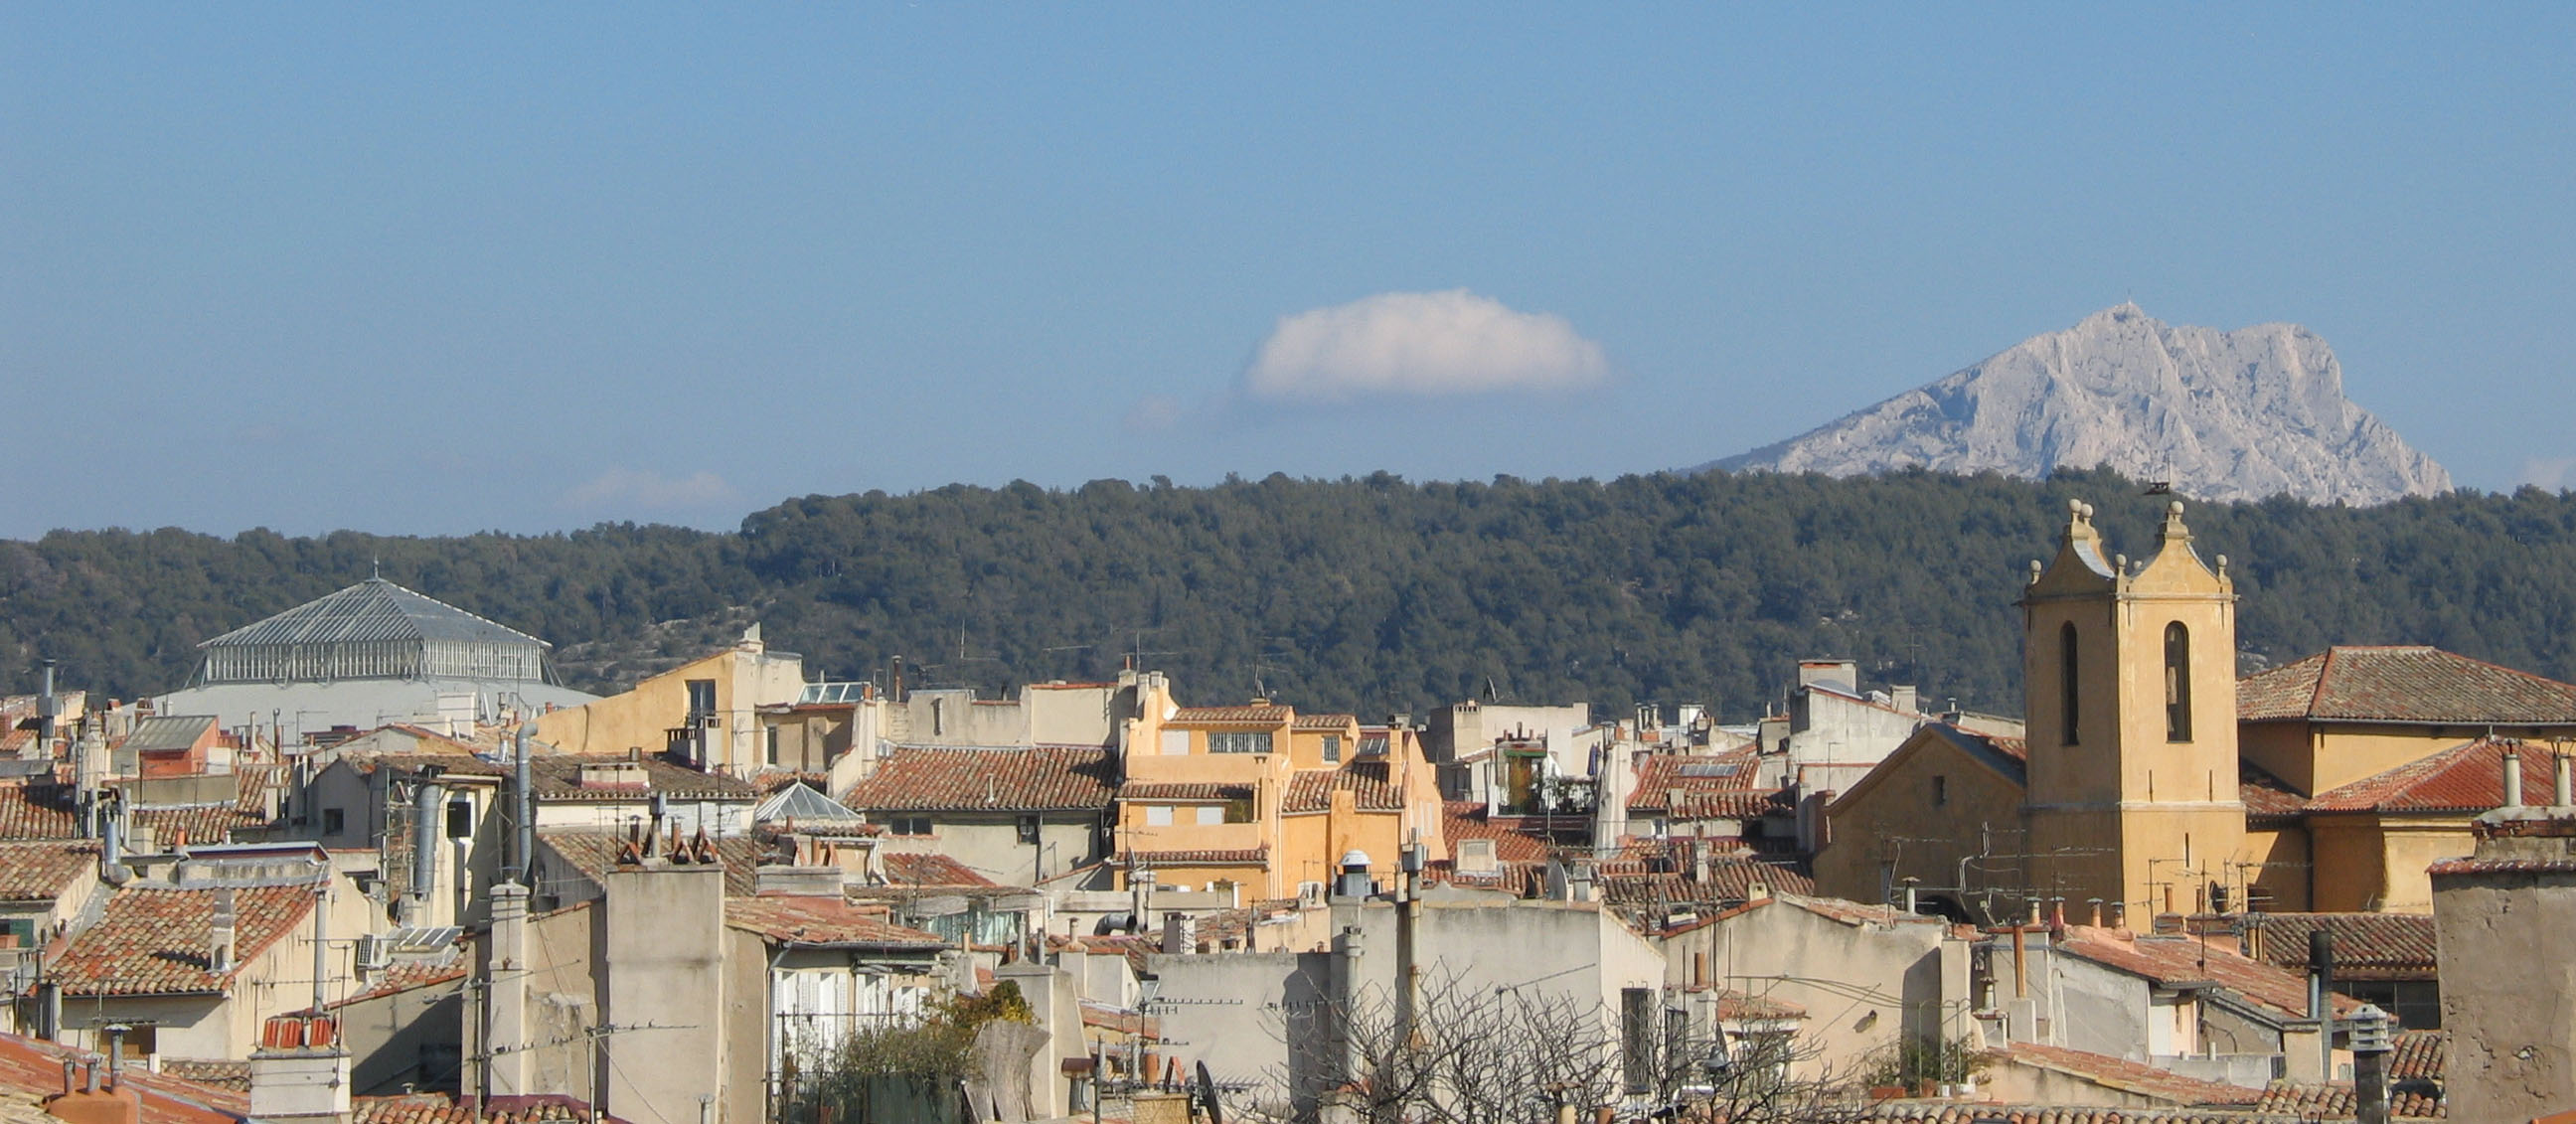 https://upload.wikimedia.org/wikipedia/commons/d/dc/Montagne_Sainte-Victoire_towards_roofs_of_Aix-en-Provence.jpg?uselang=fr